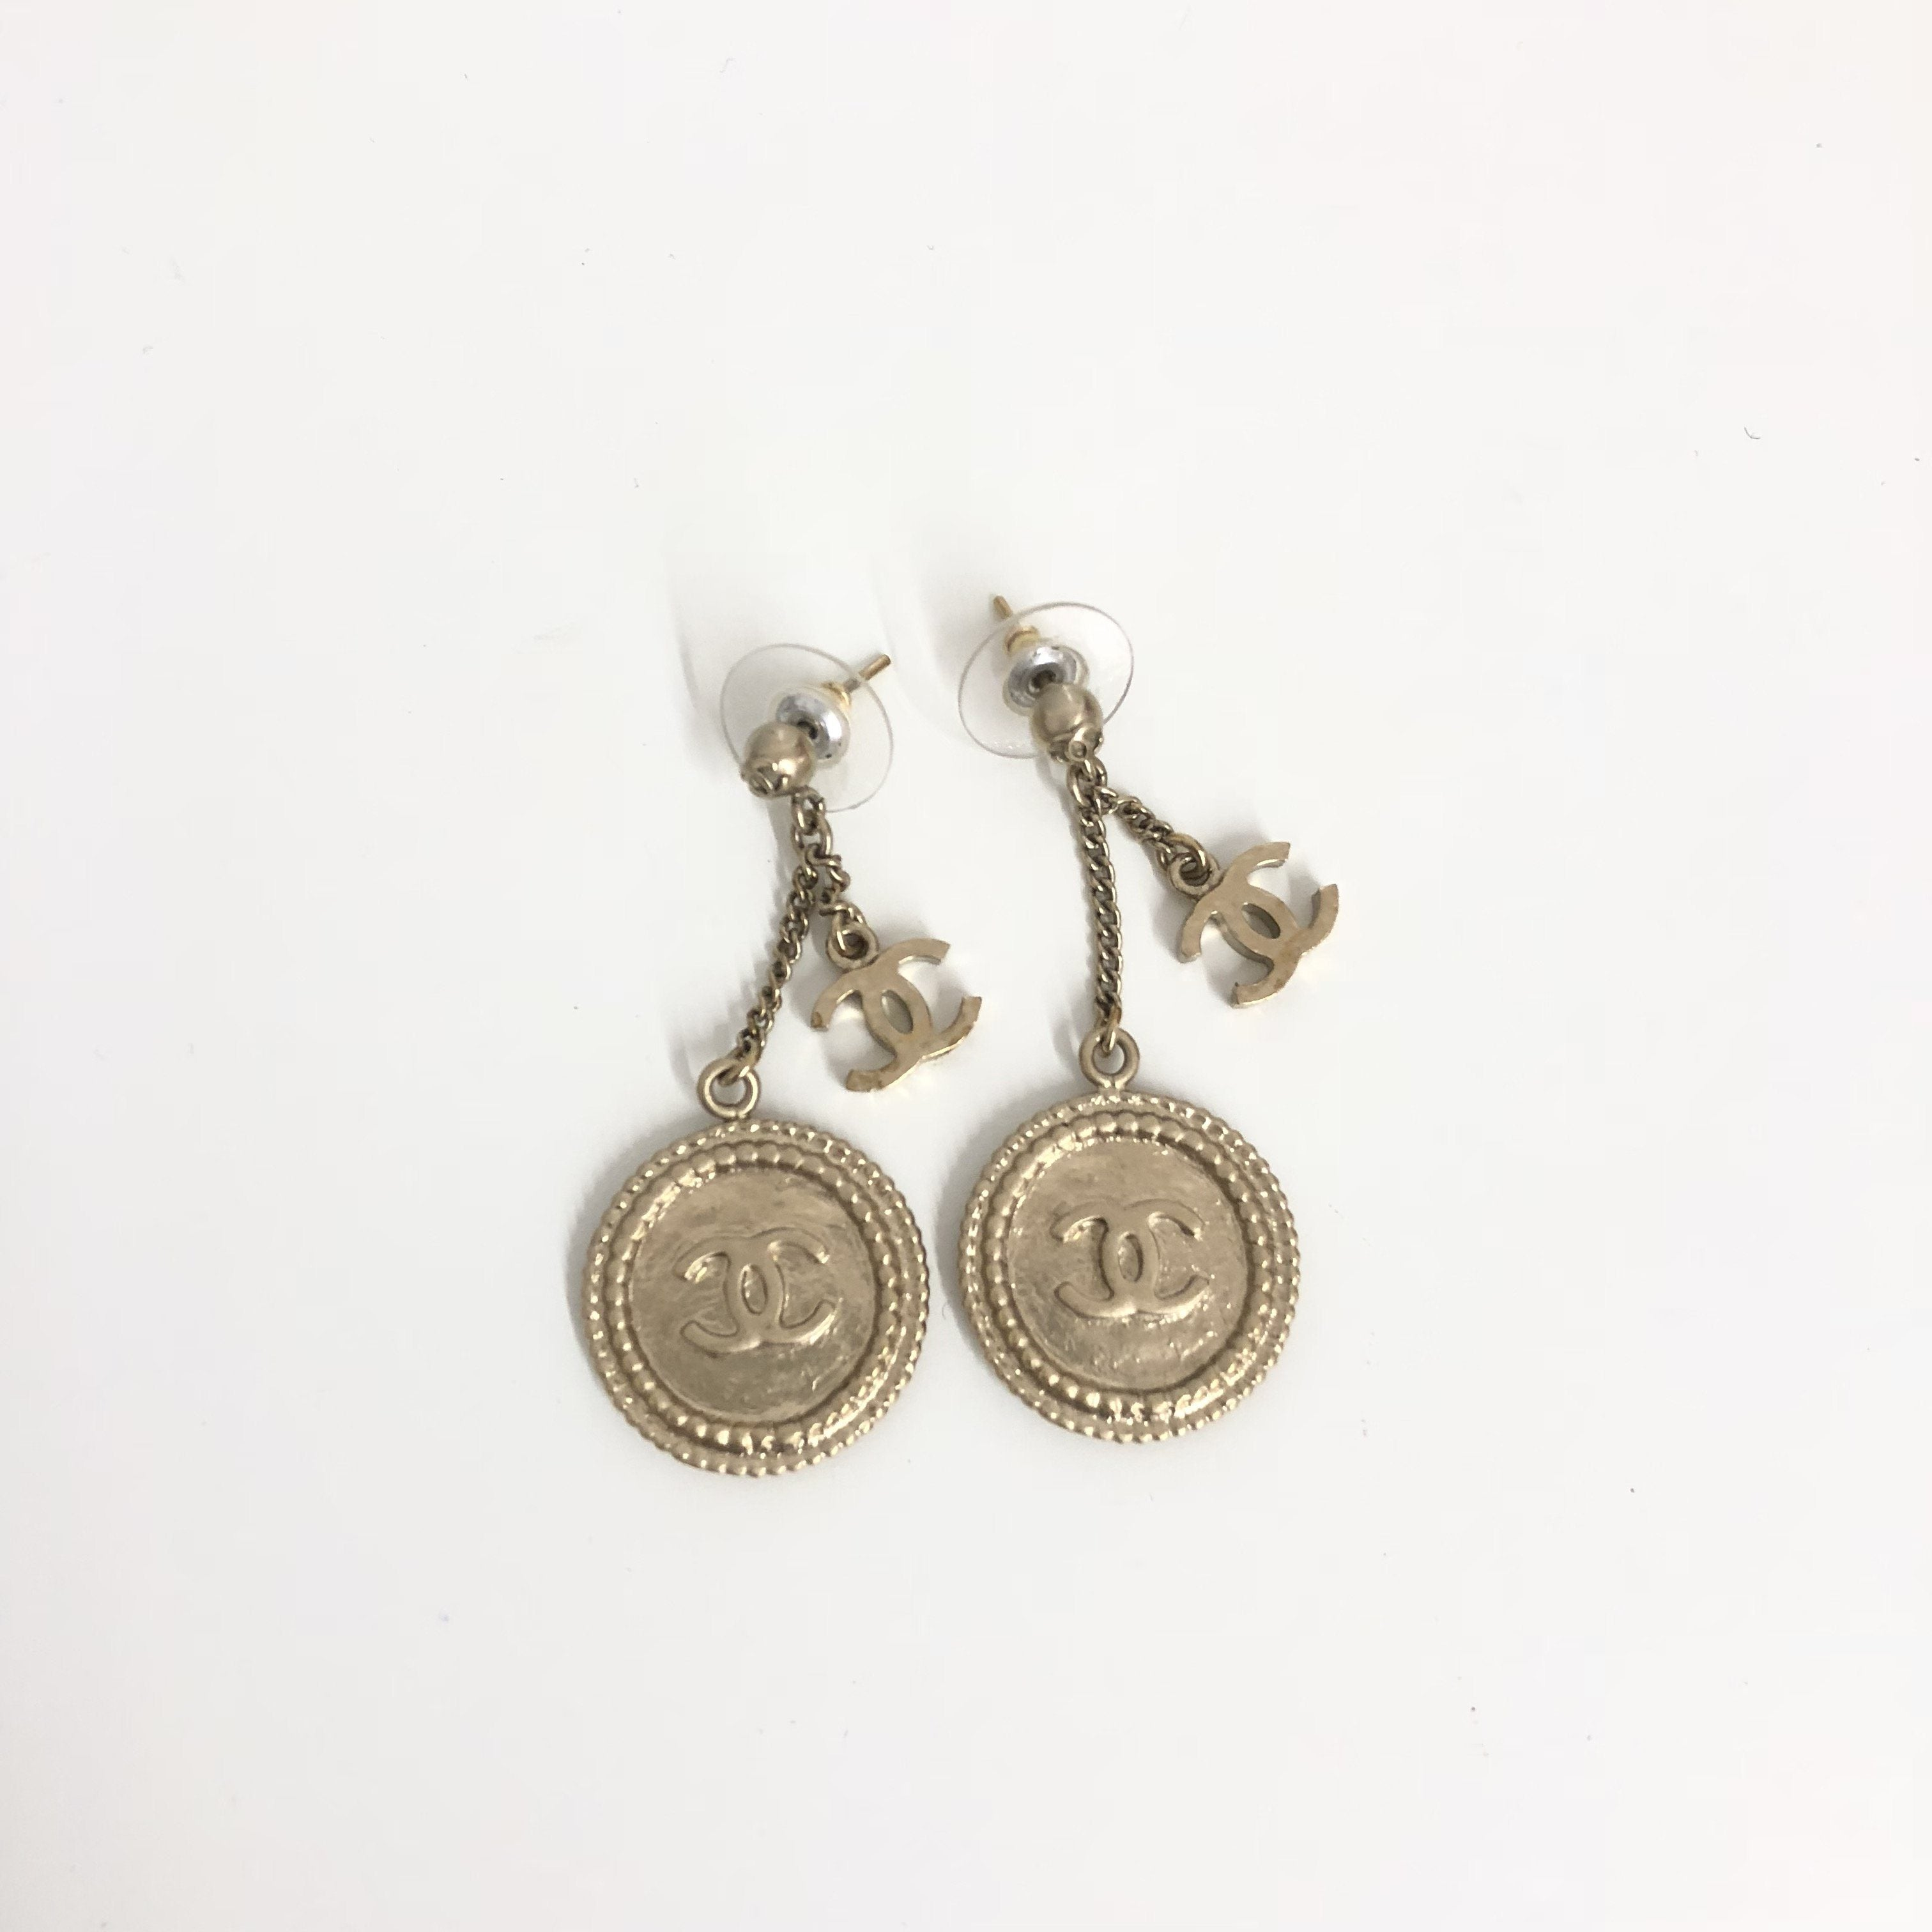 Chanel Clover Gold Coin CC Earrings